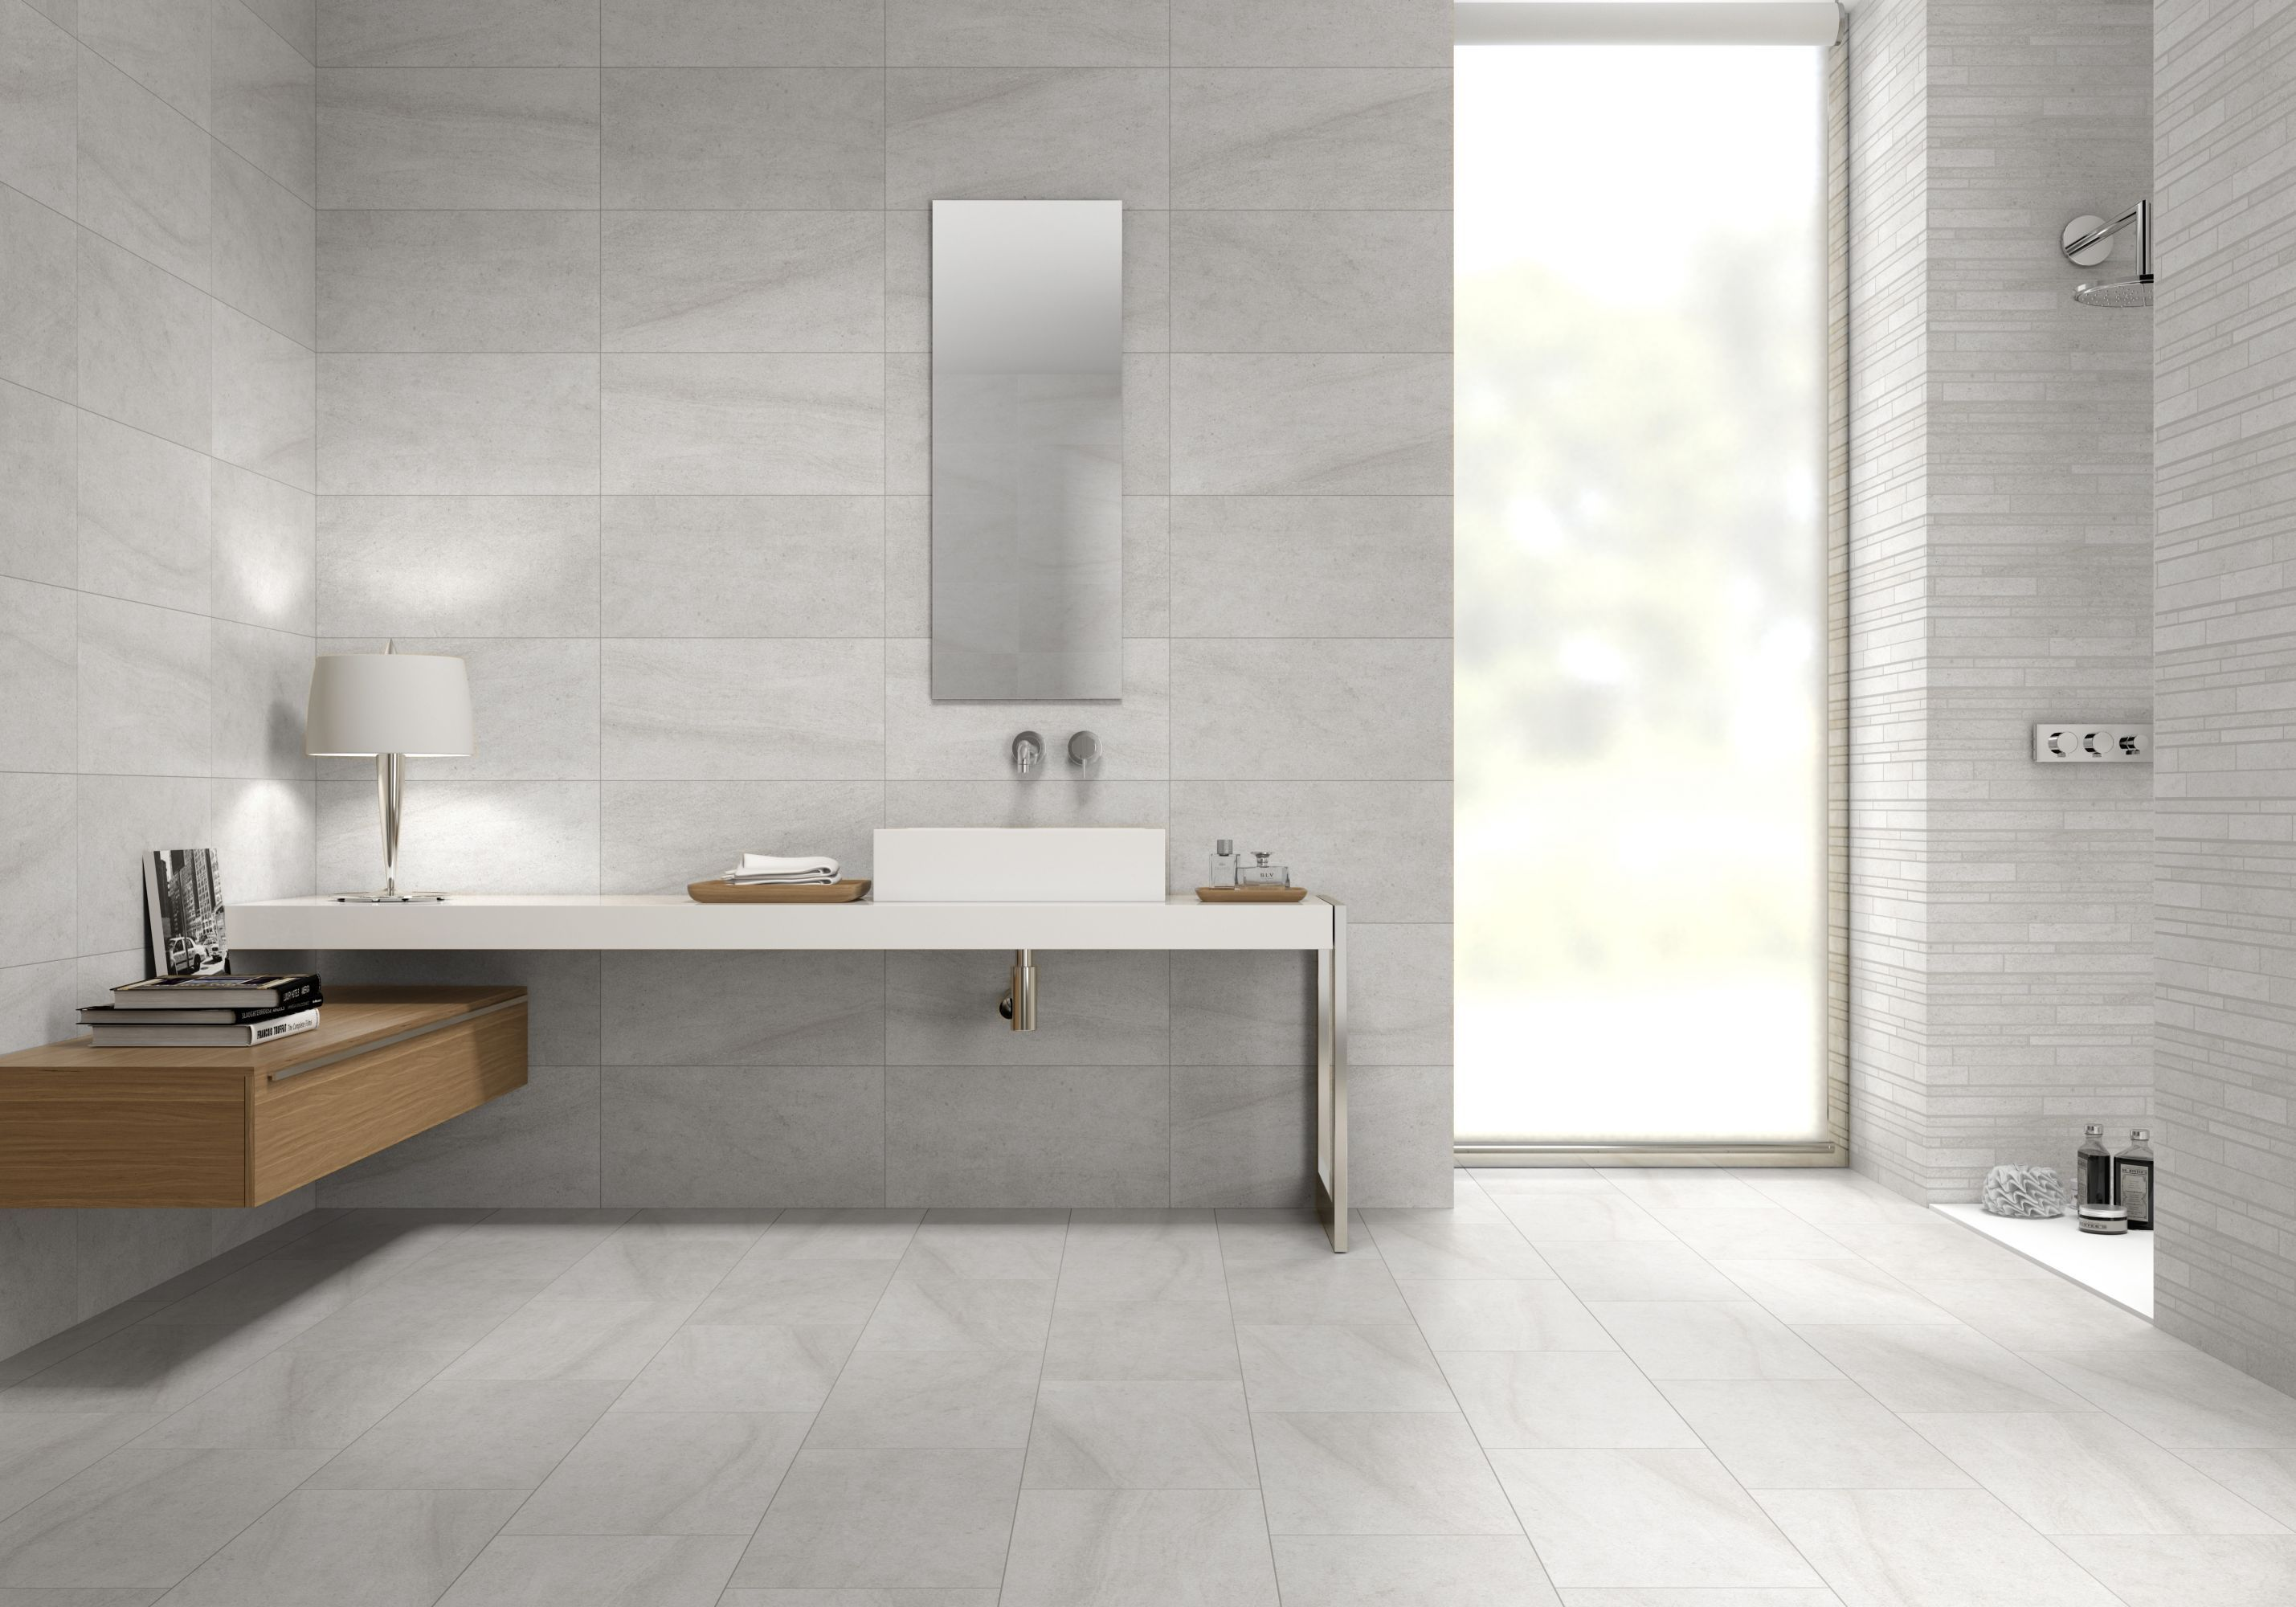 600 x 300 tile patterns google search bathrooms for Tiles bathroom design